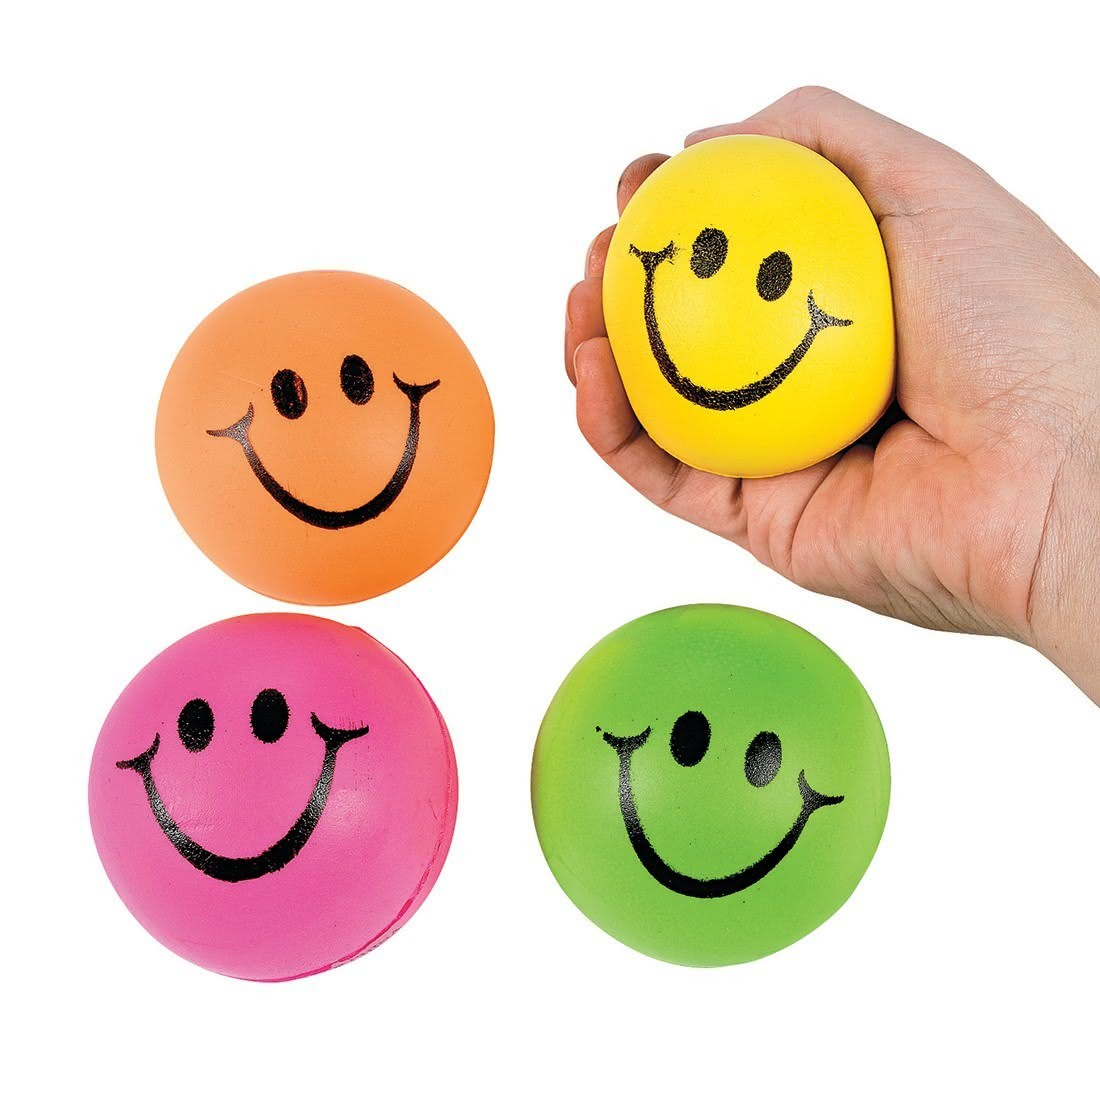 Colorful Smiley Face Stress Balls [image]